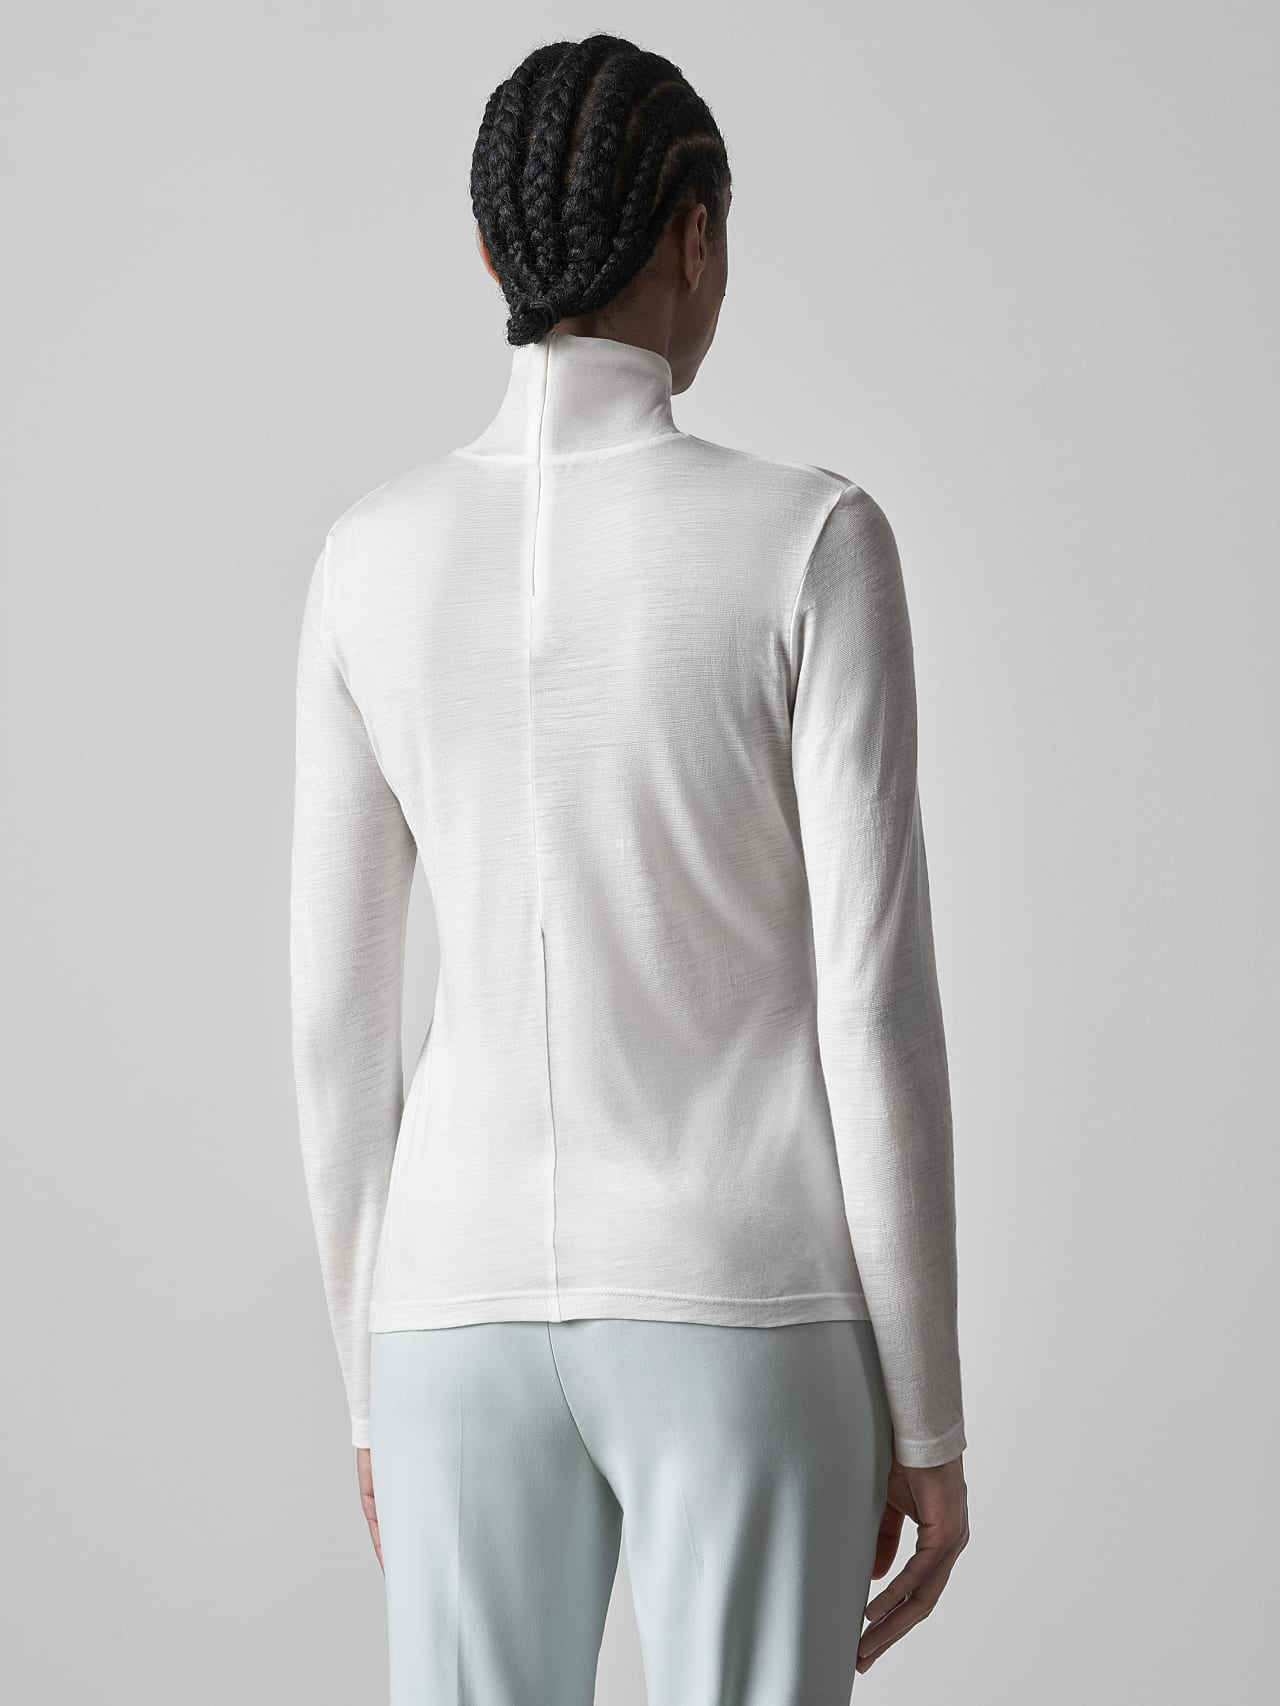 JUPAO V2.Y5.02 Turtleneck Longsleeve offwhite Front Main Alpha Tauri